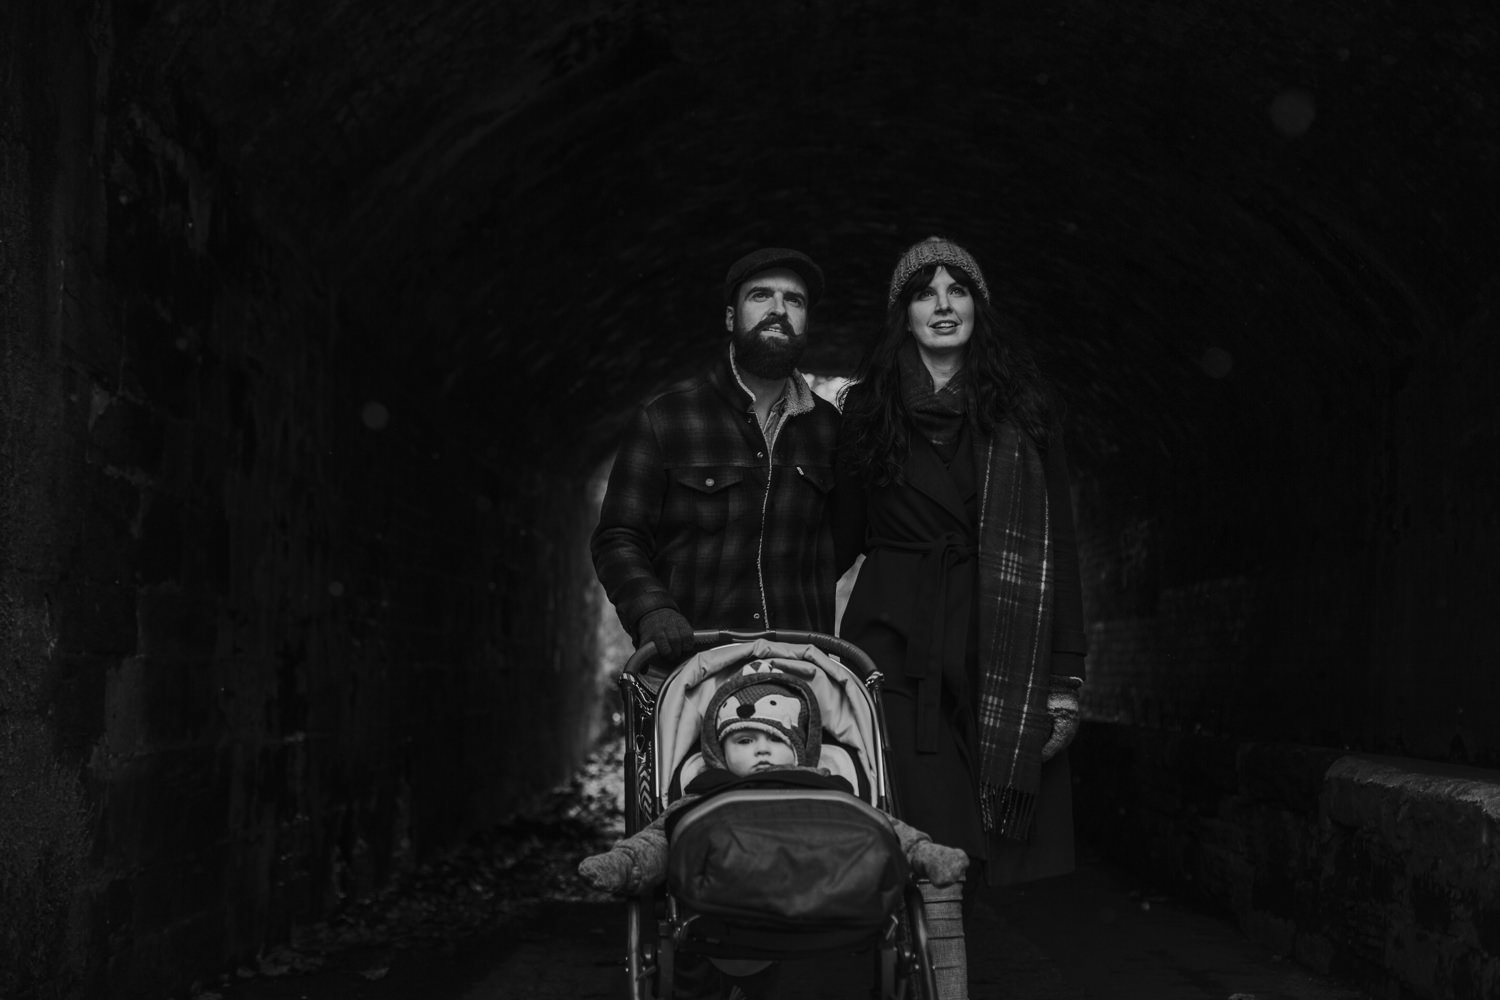 Clair obscur photo of parents with their baby